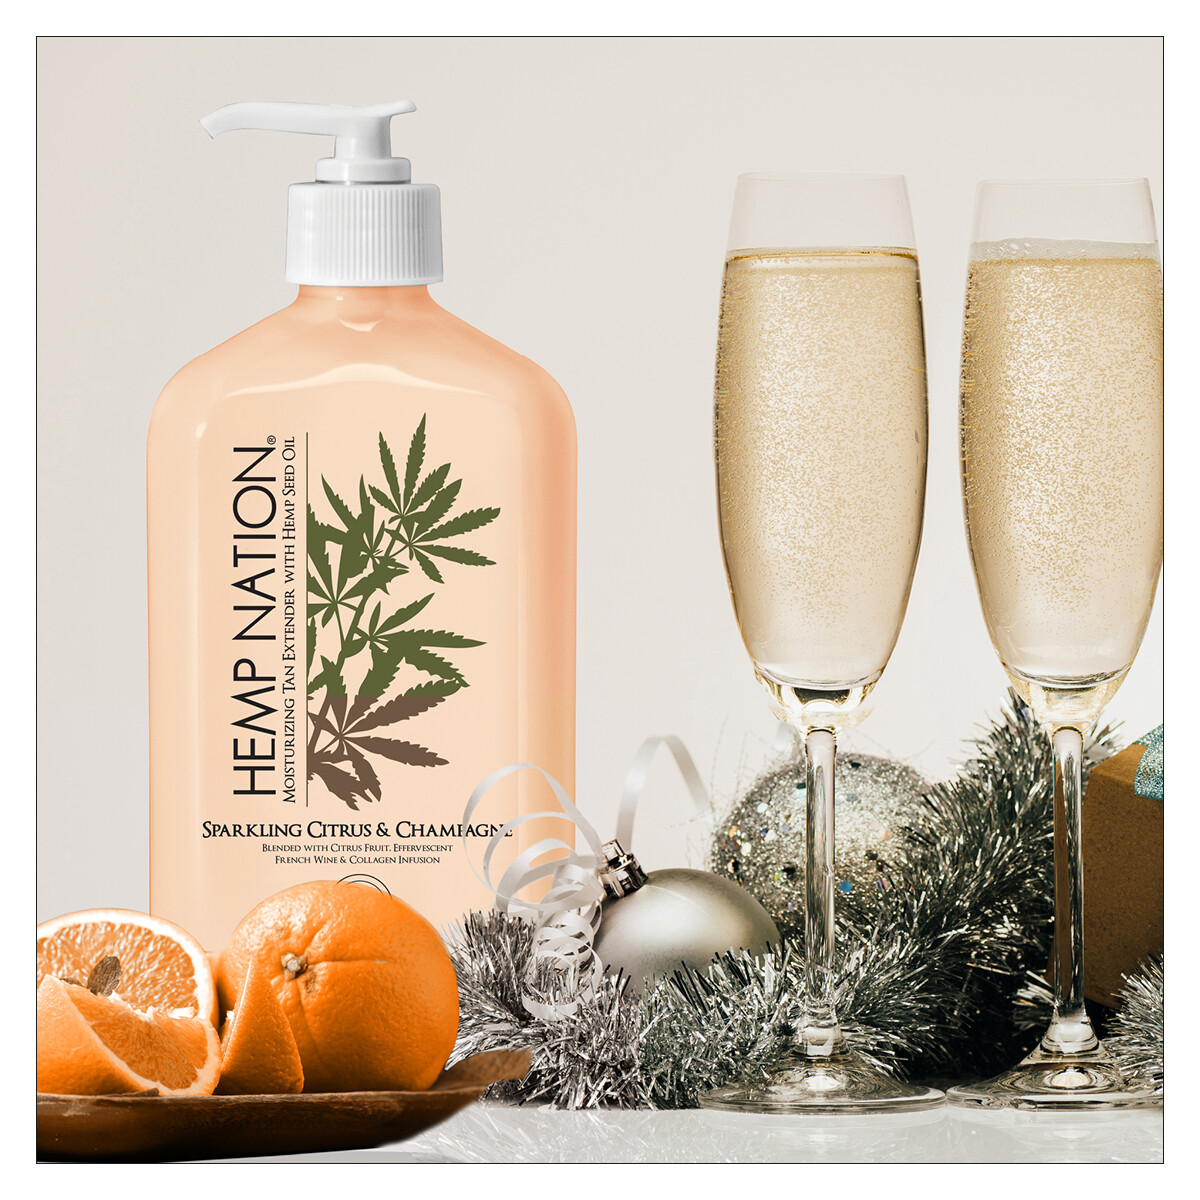 HEMP NATION - Sparkling Citrus & Champagne